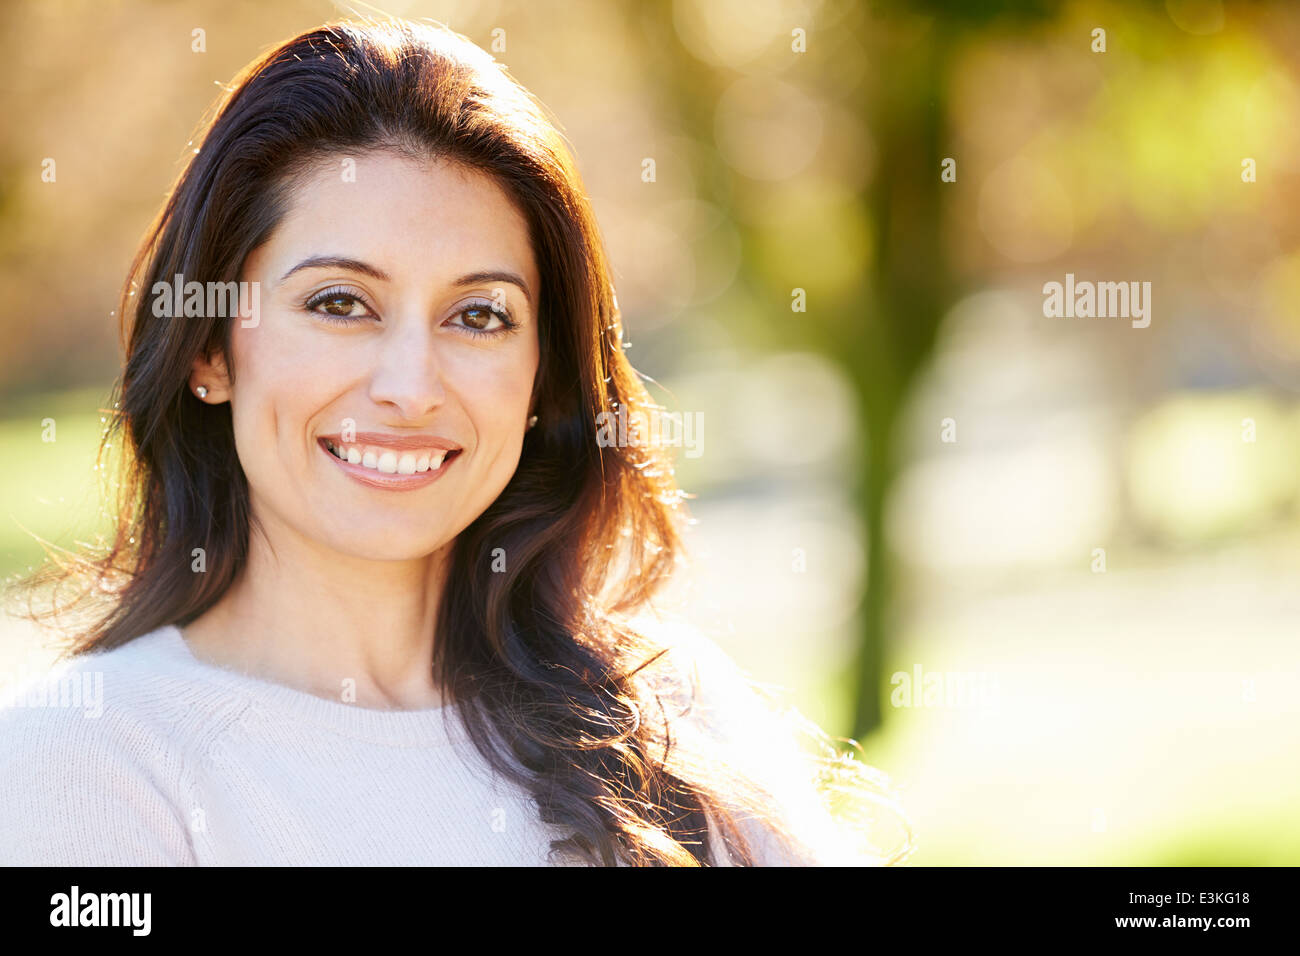 Portrait Of Attractive Young Woman in Countryside Photo Stock